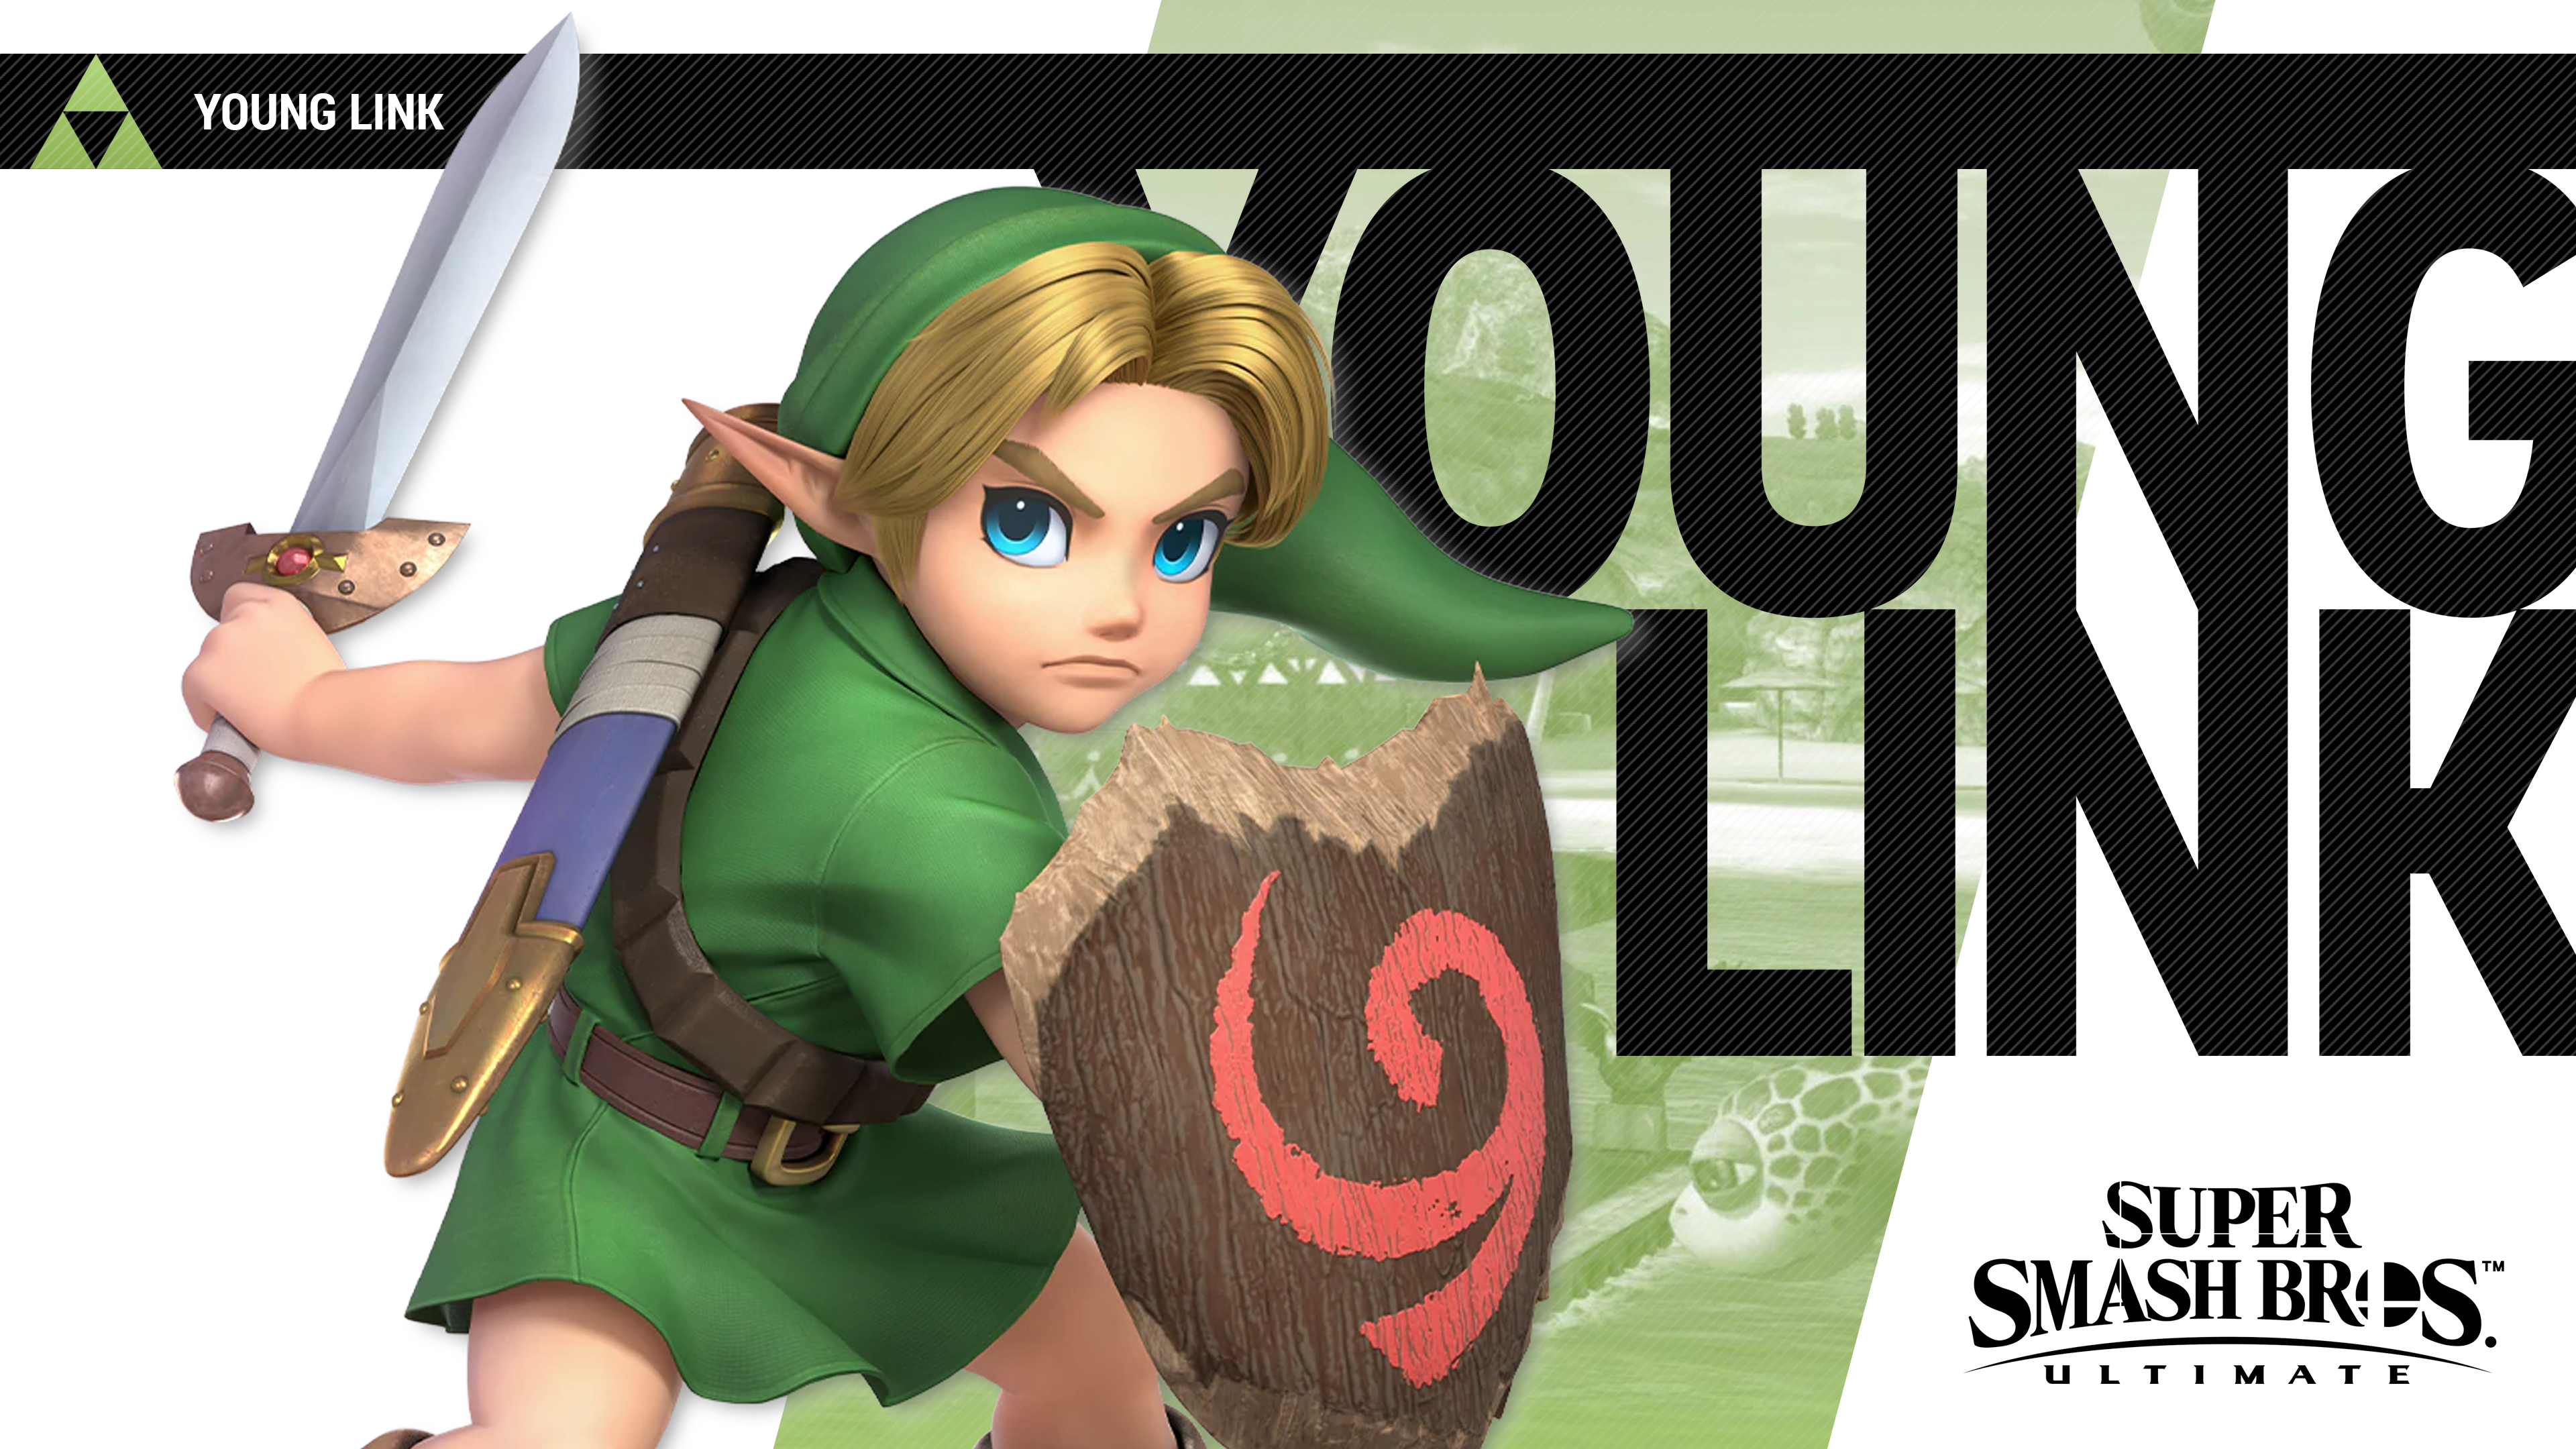 Super Smash Bros Ultimate Young Link Wallpapers Cat with Monocle 3840x2160